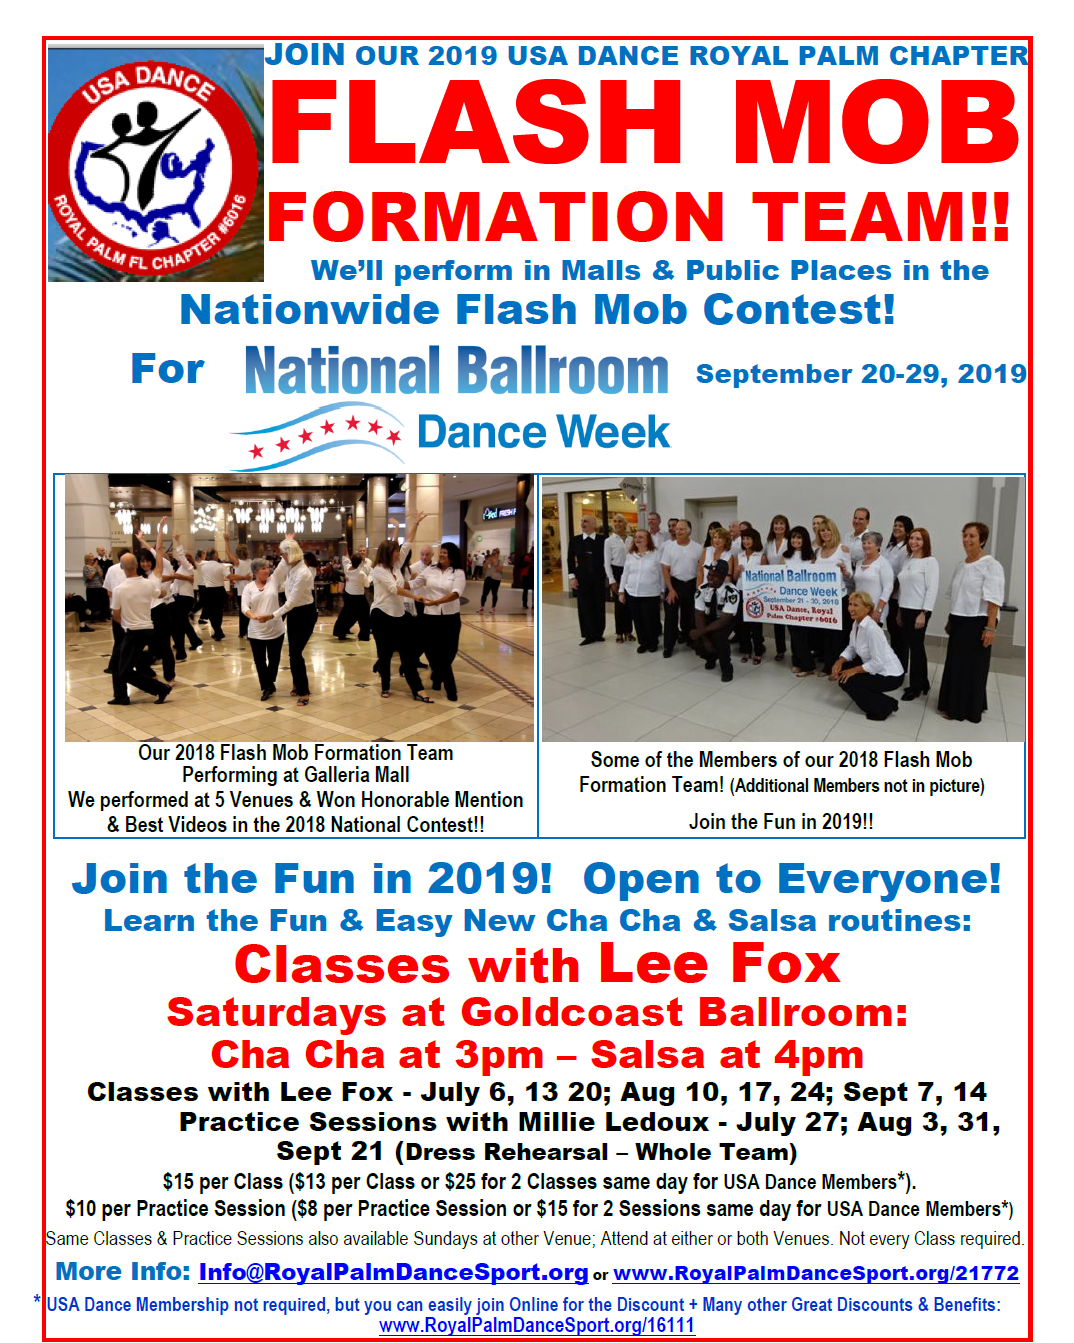 Join our Flash Mob Formation Team! - Classes with Lee Fox - Saturdays at Goldcoast Ballroom